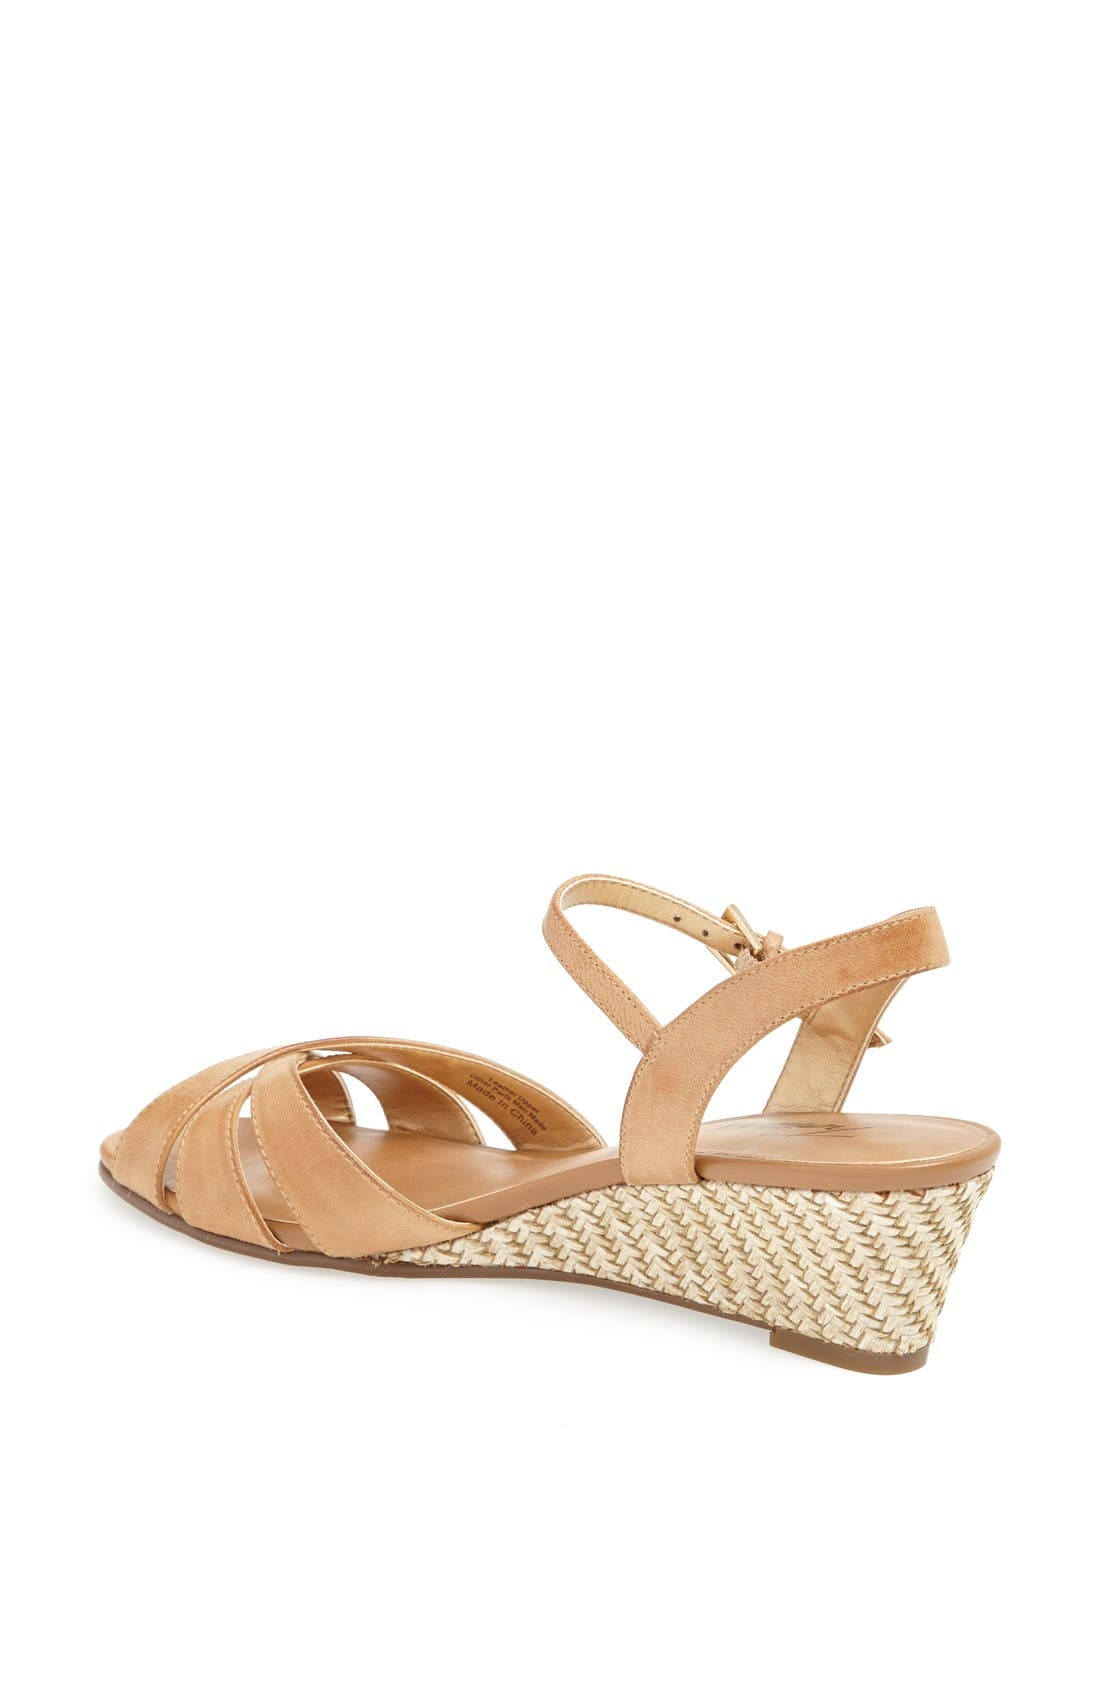 'Mickey' Wedge Sandal,                             Alternate thumbnail 38, color,